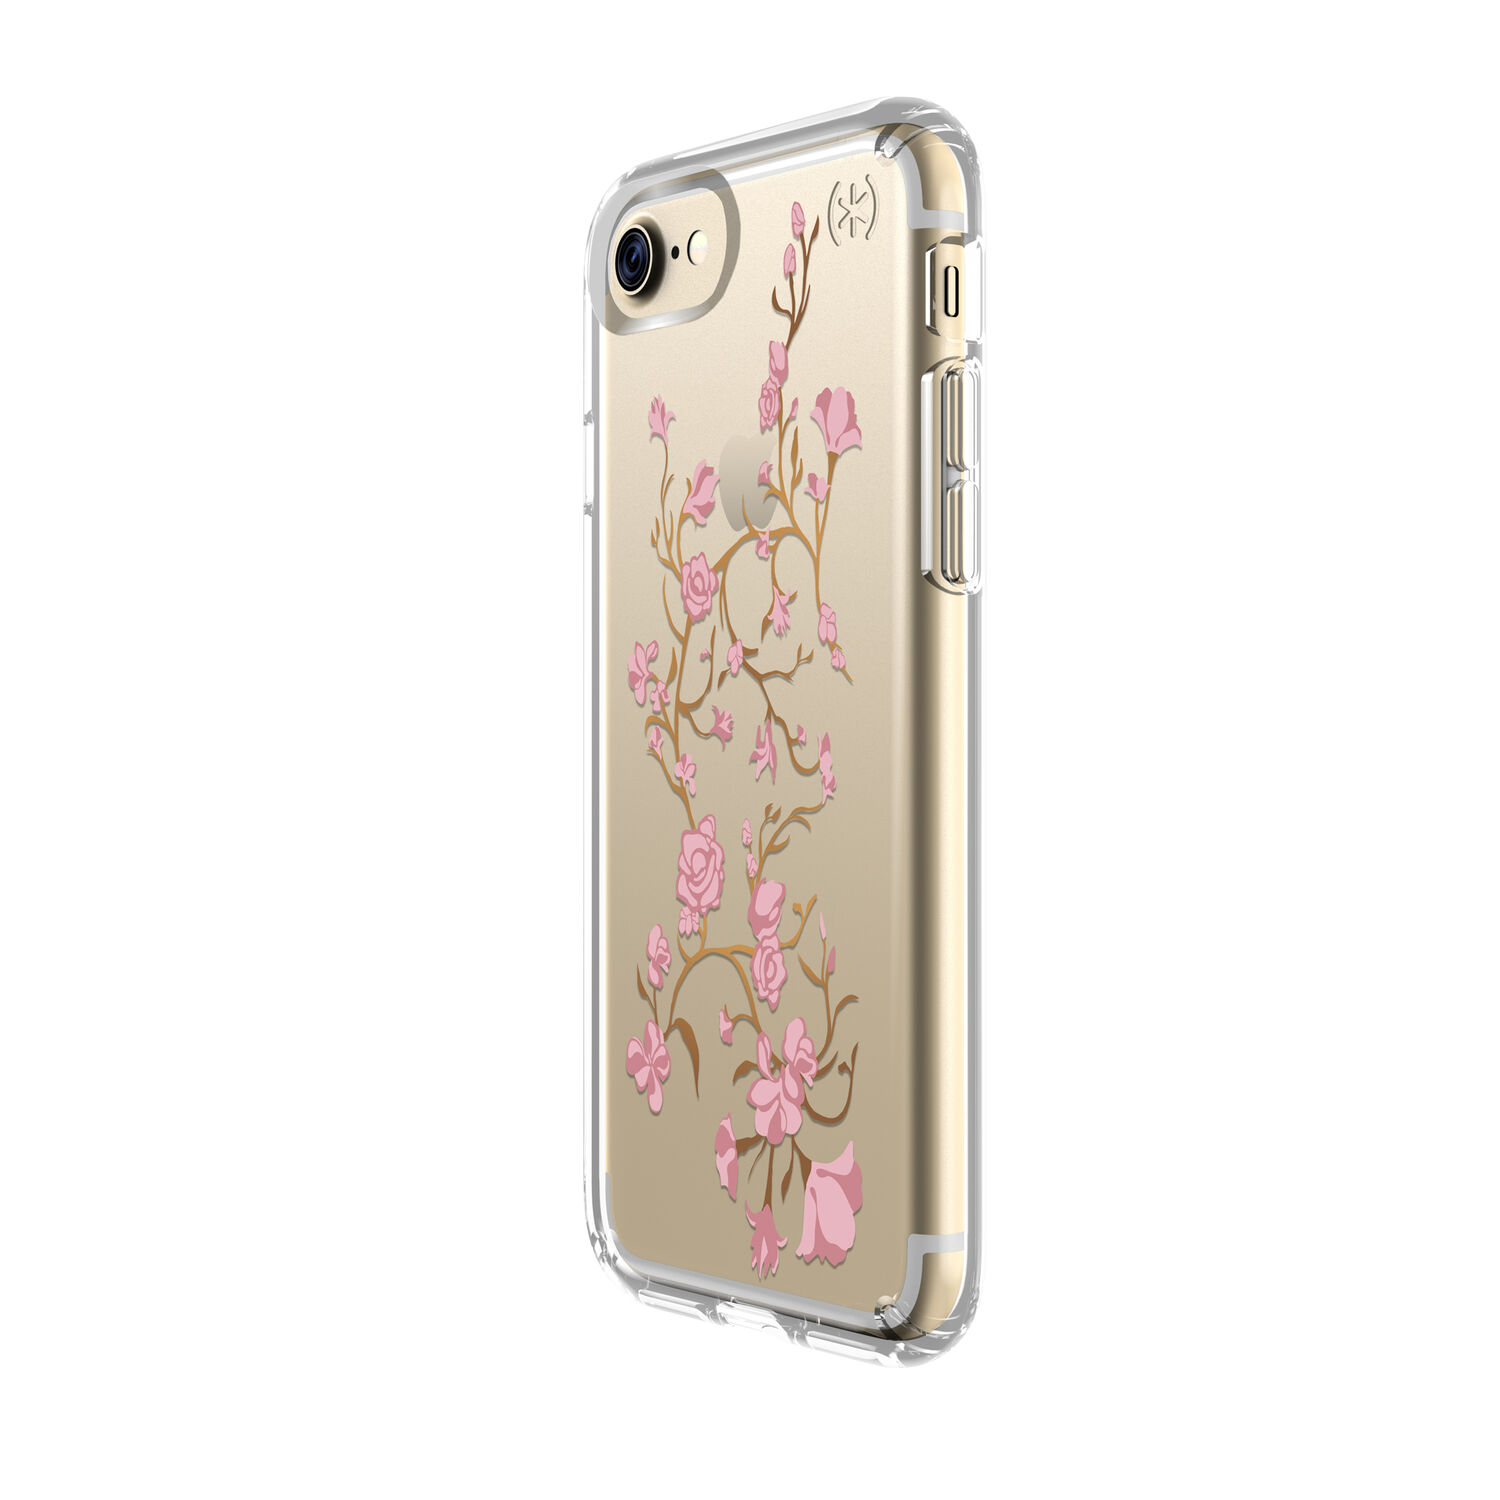 Iphone 7 Cases Flowers